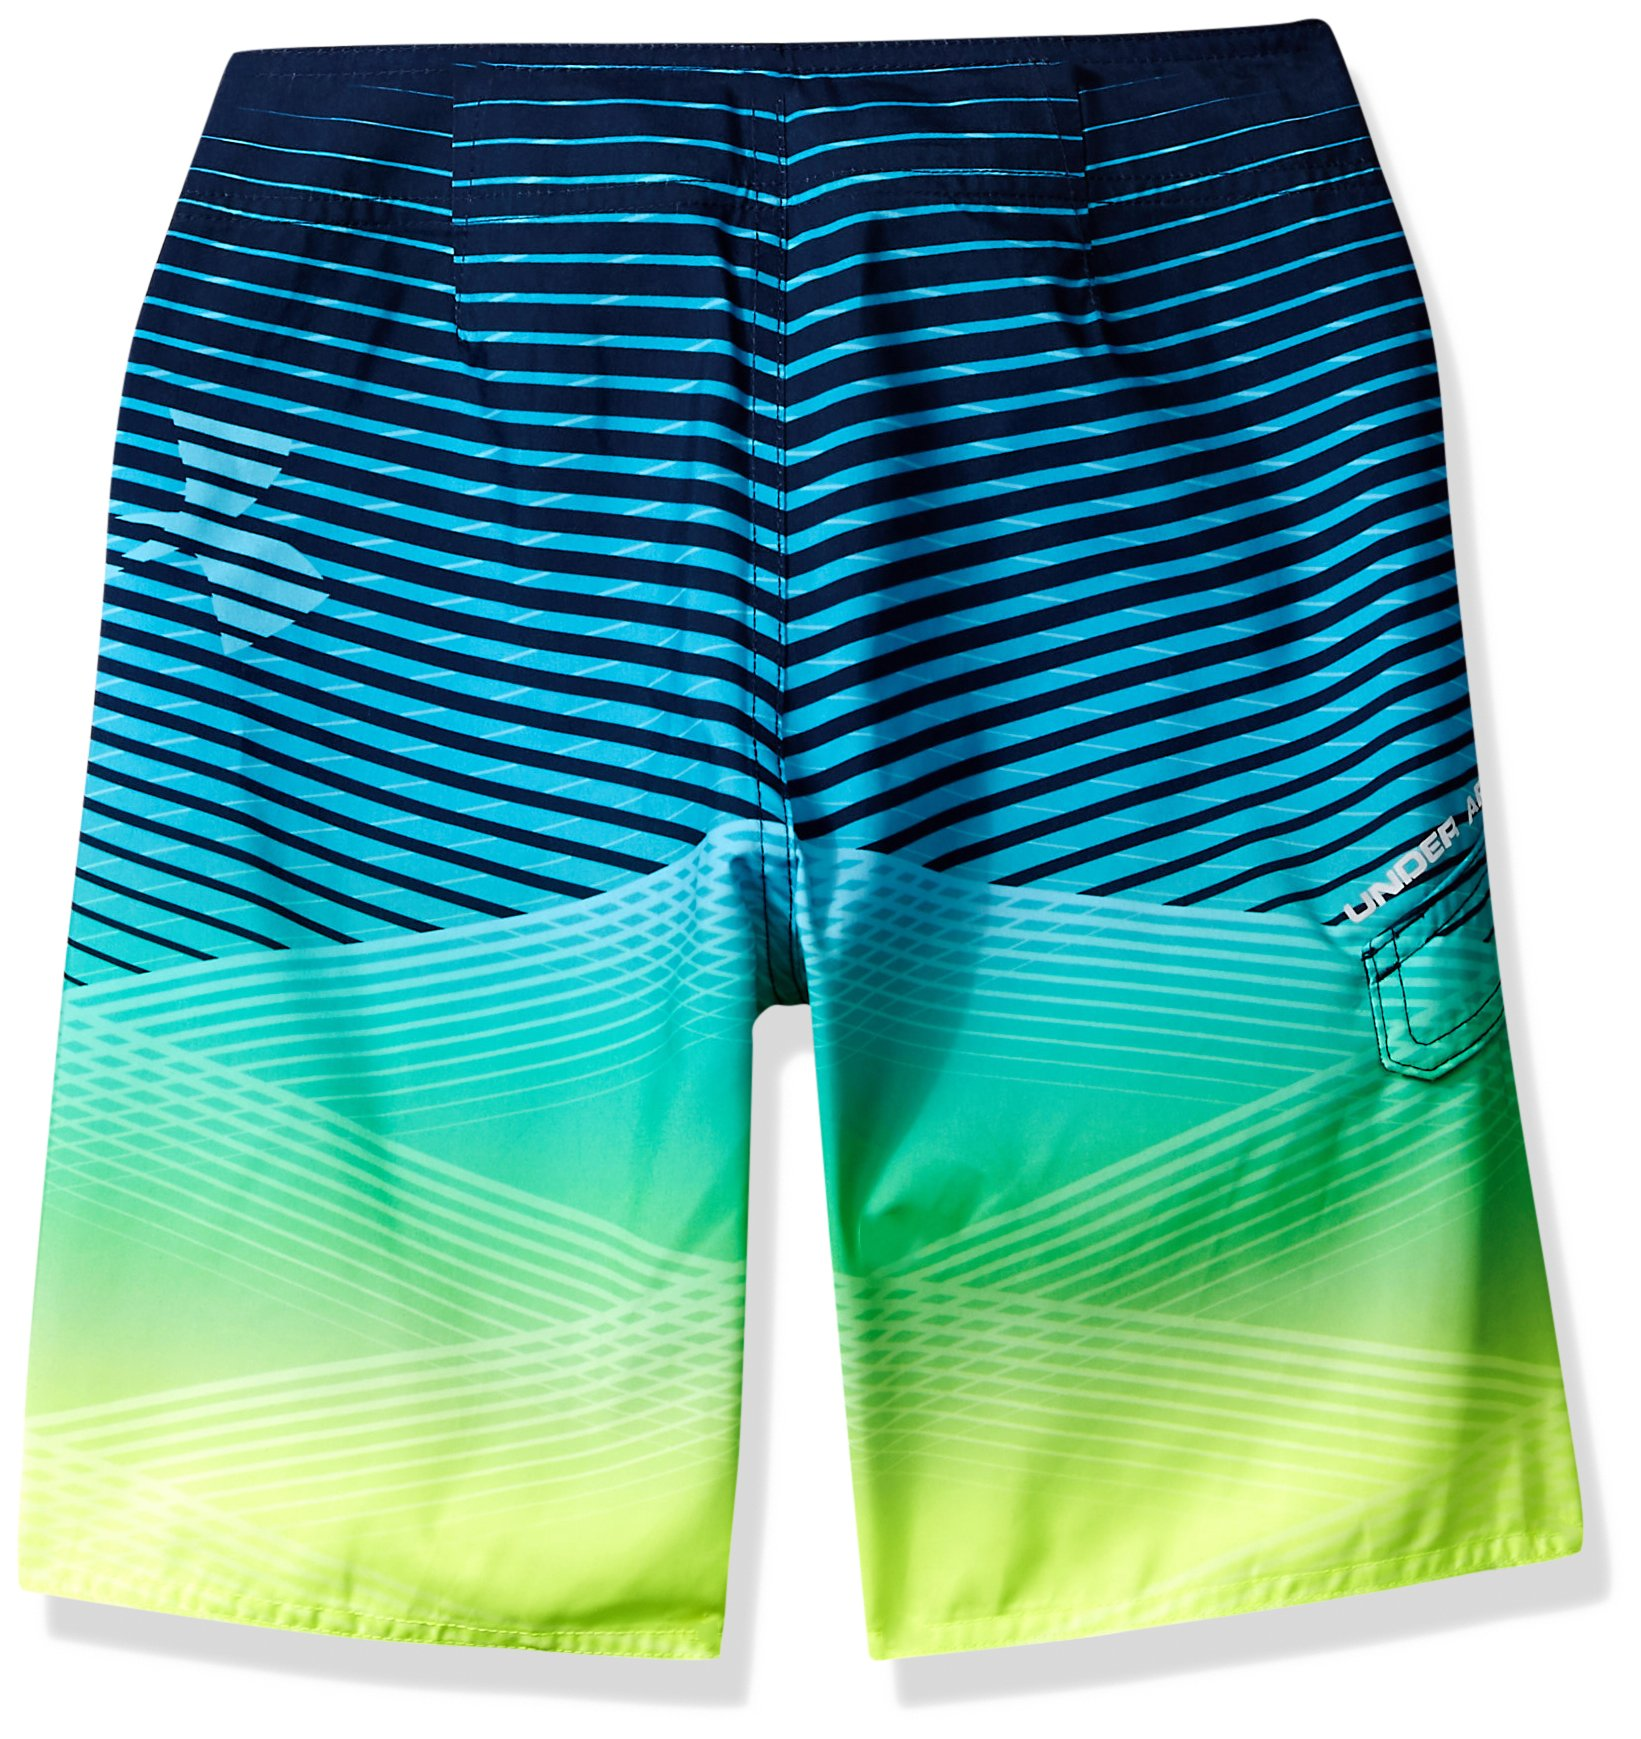 Under Armour Big Boys' Boardshort, Arena Green, 20 by Under Armour (Image #2)